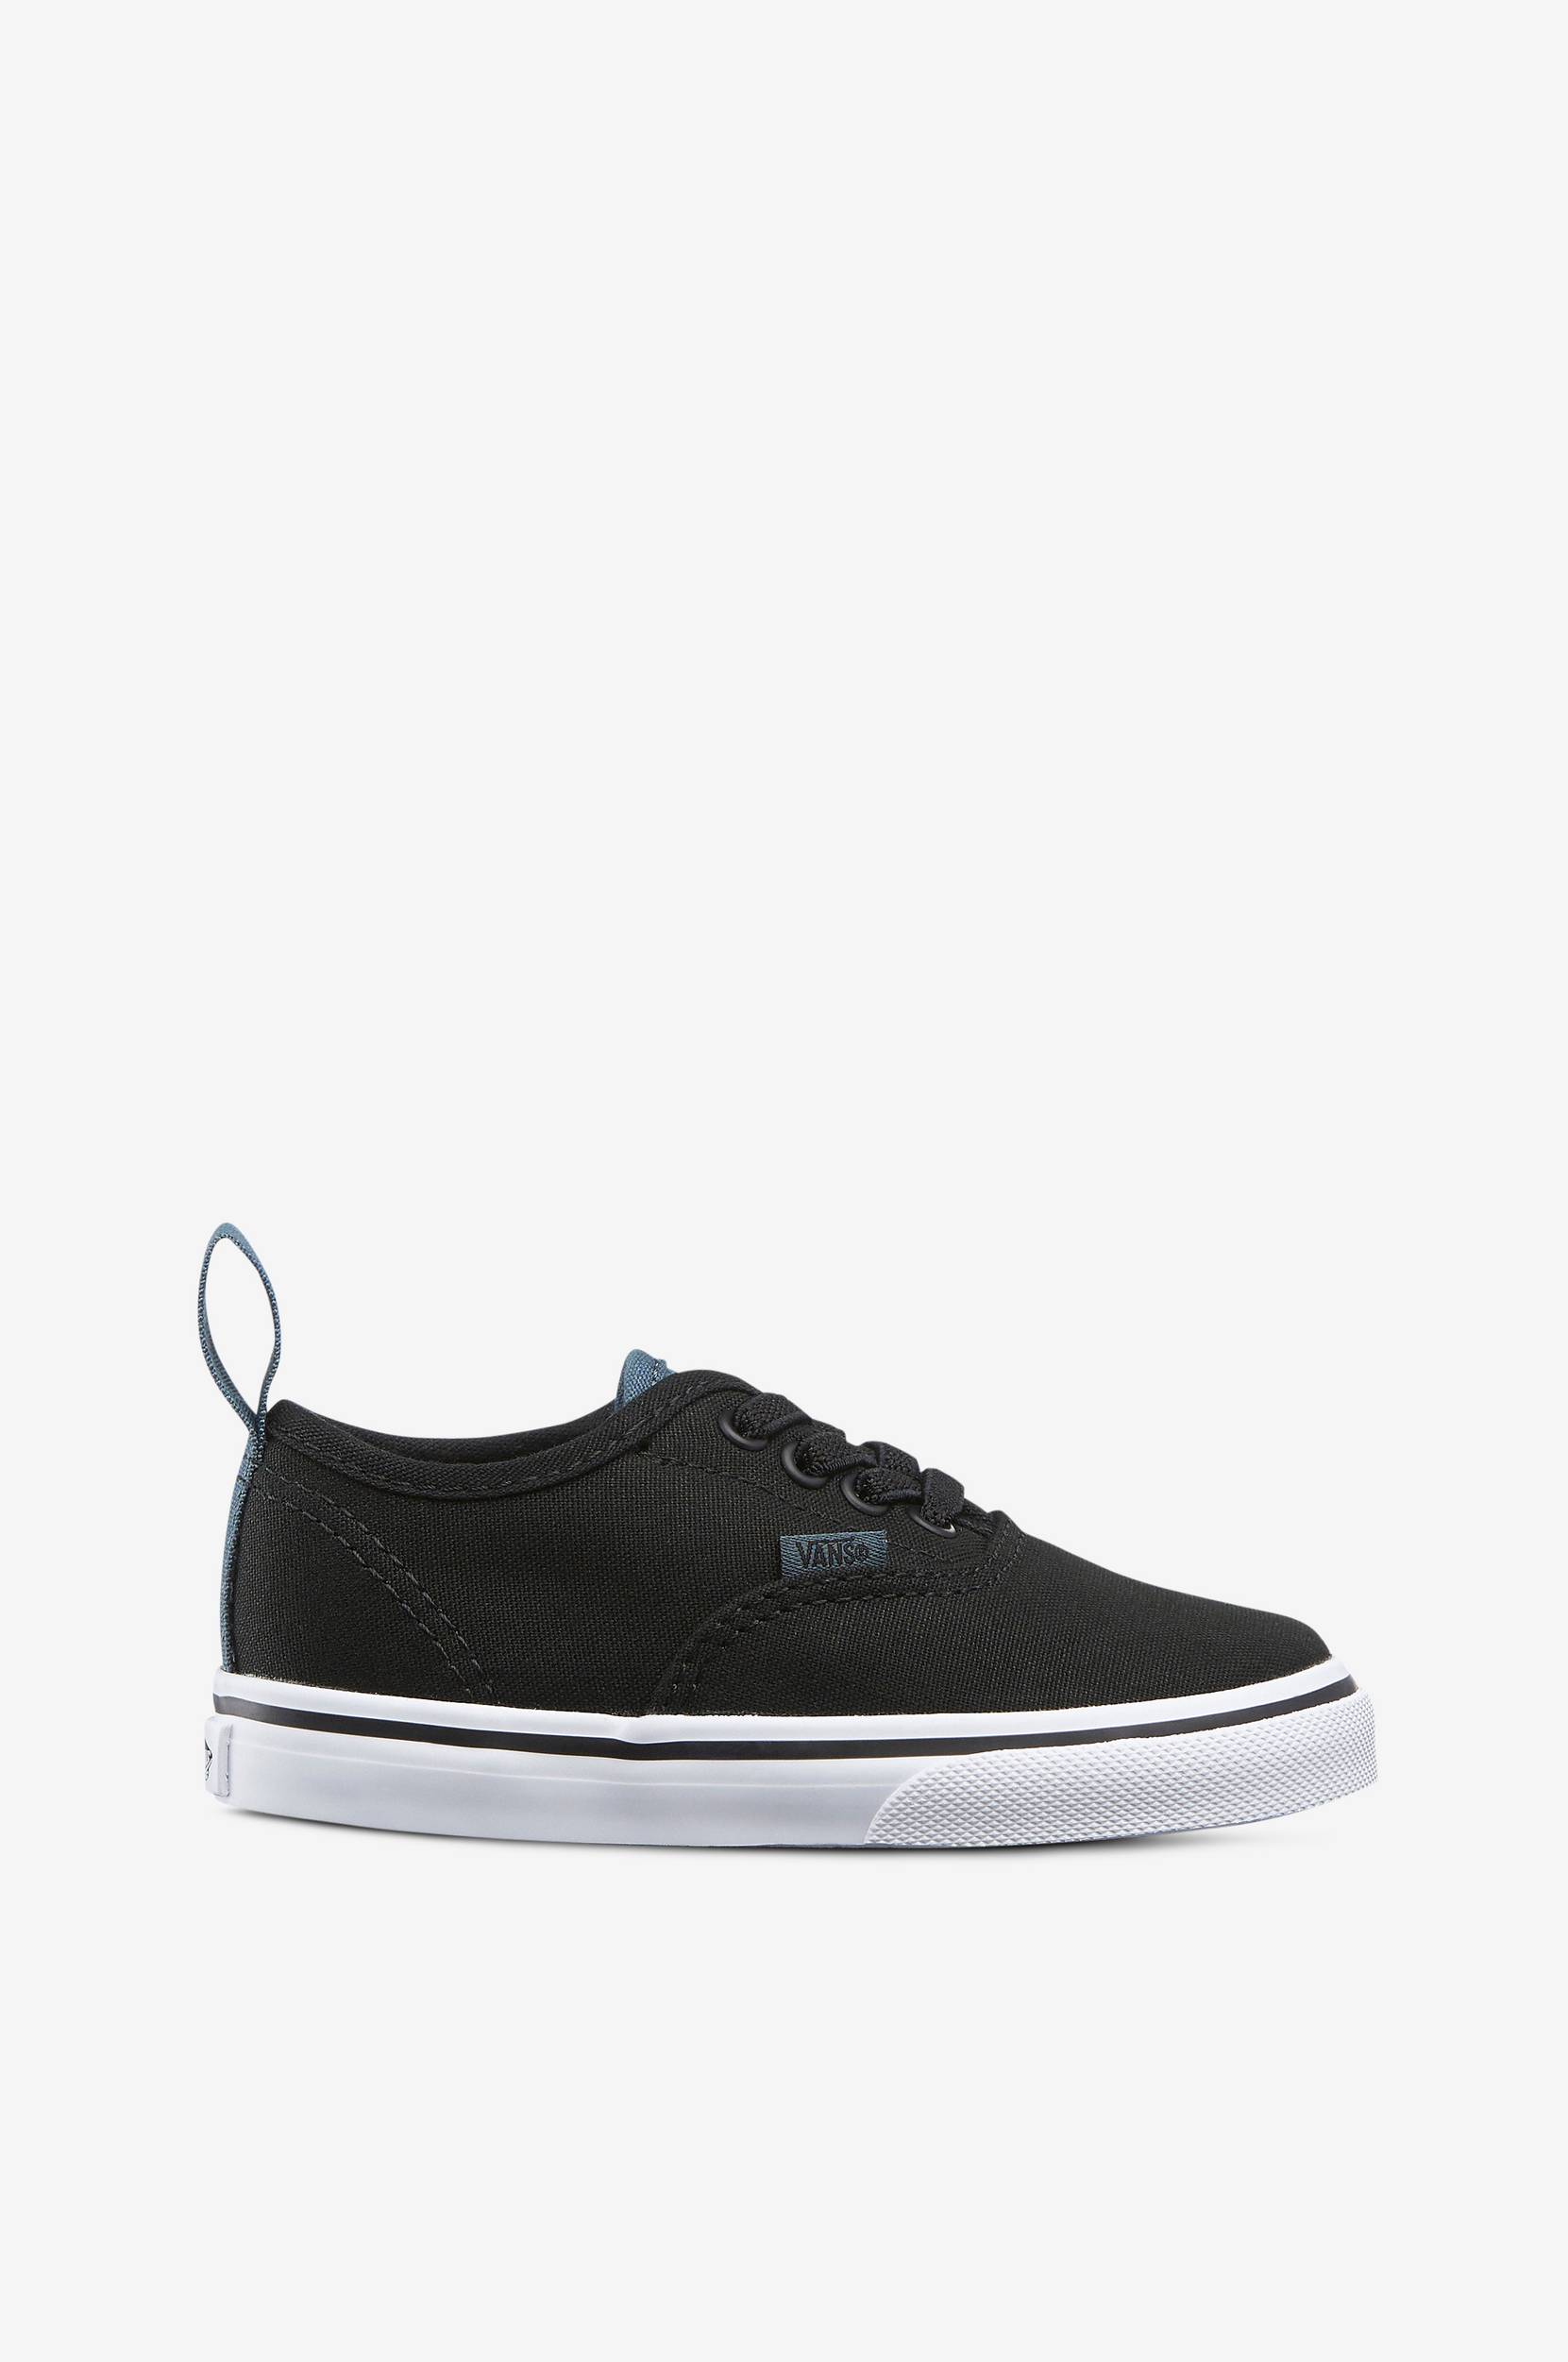 Sneakers Authentic Elastic Vans Sneakers til Kvinder i Sort